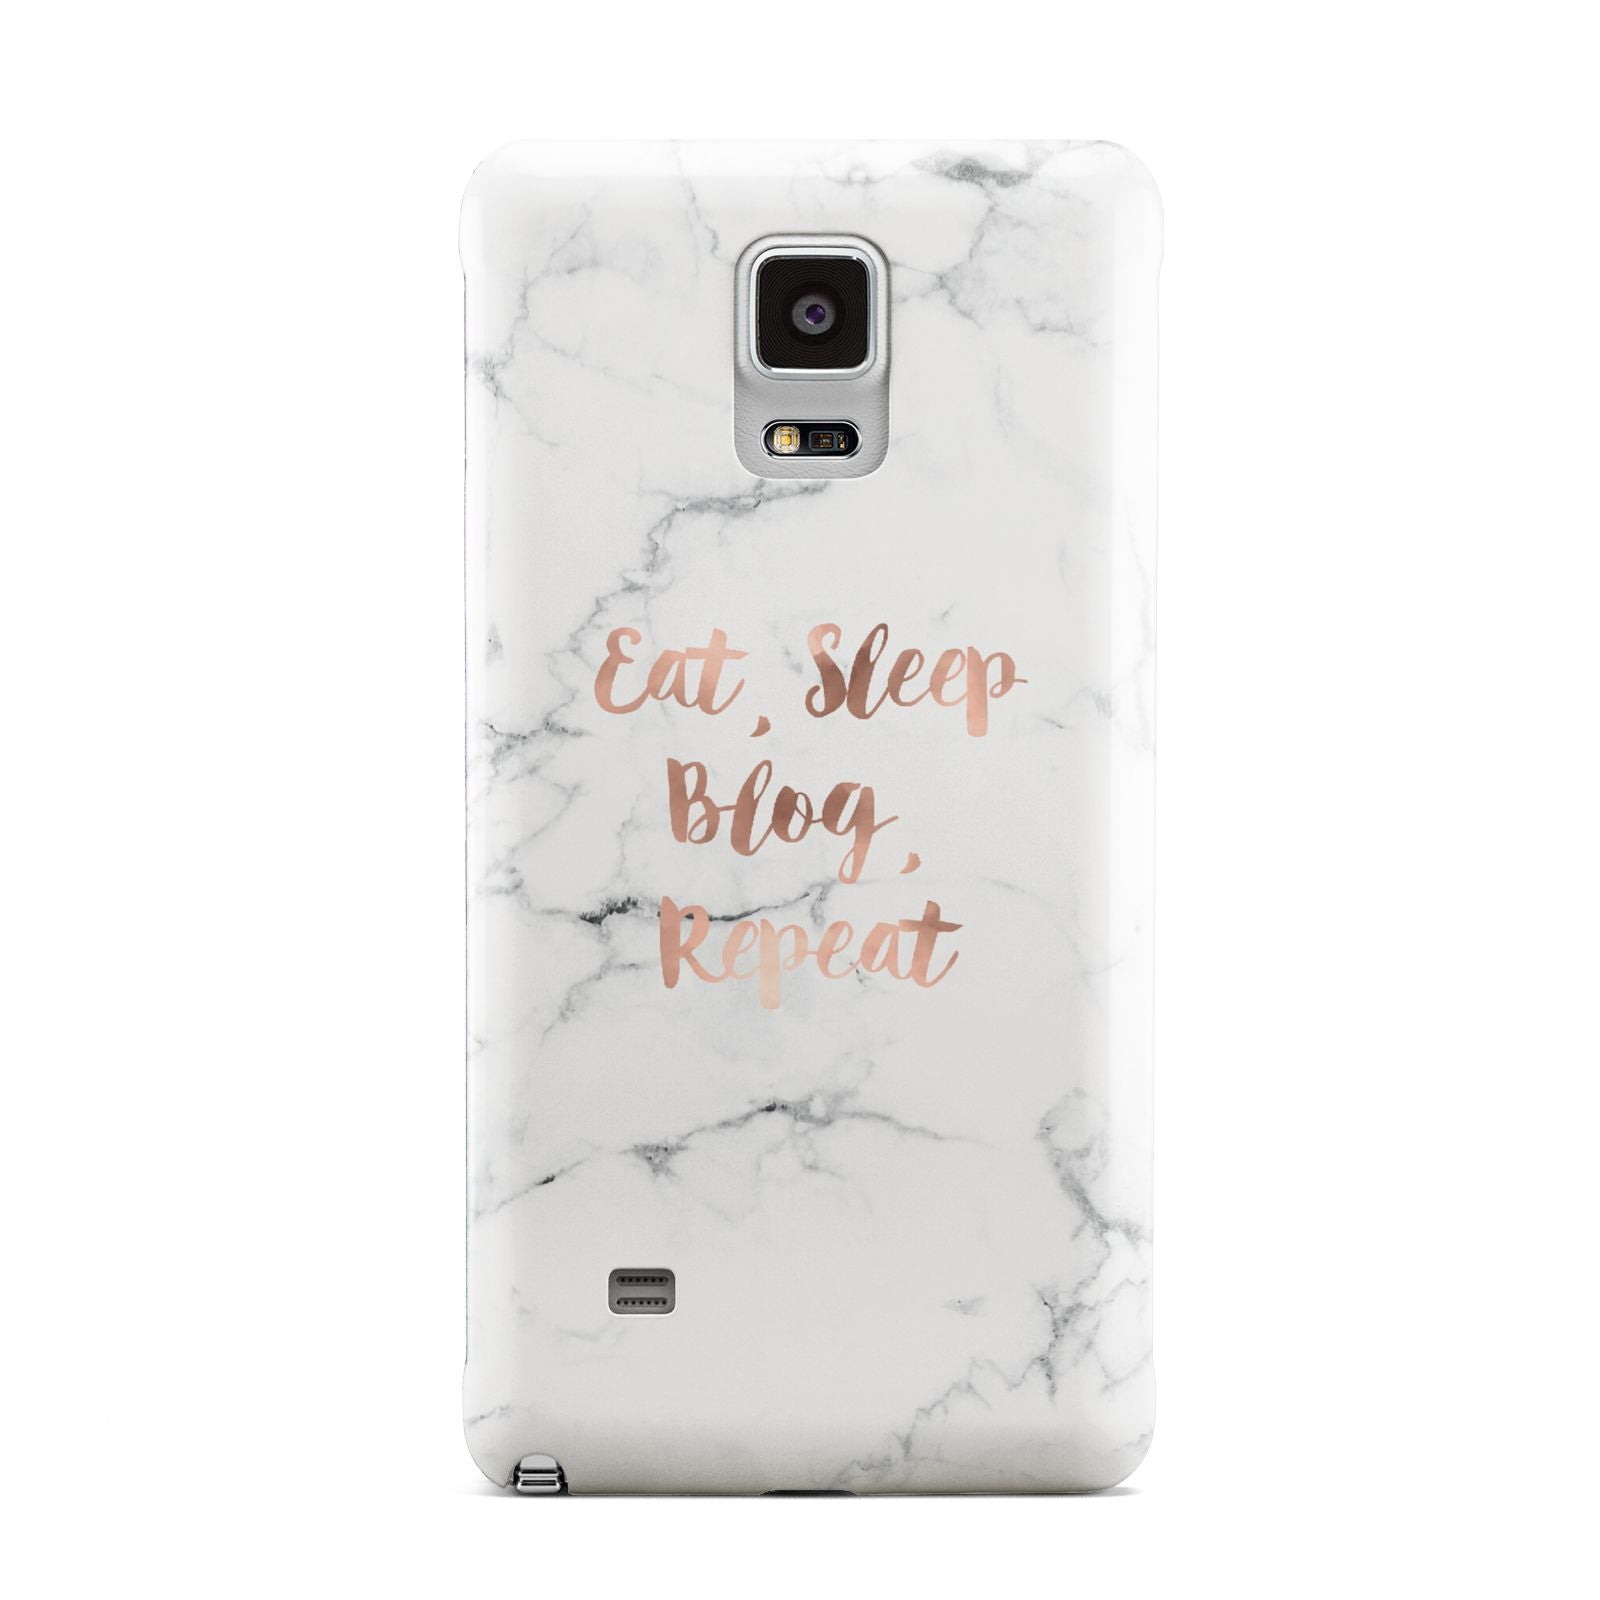 Eat Sleep Blog Repeat Marble Effect Samsung Galaxy Note 4 Case